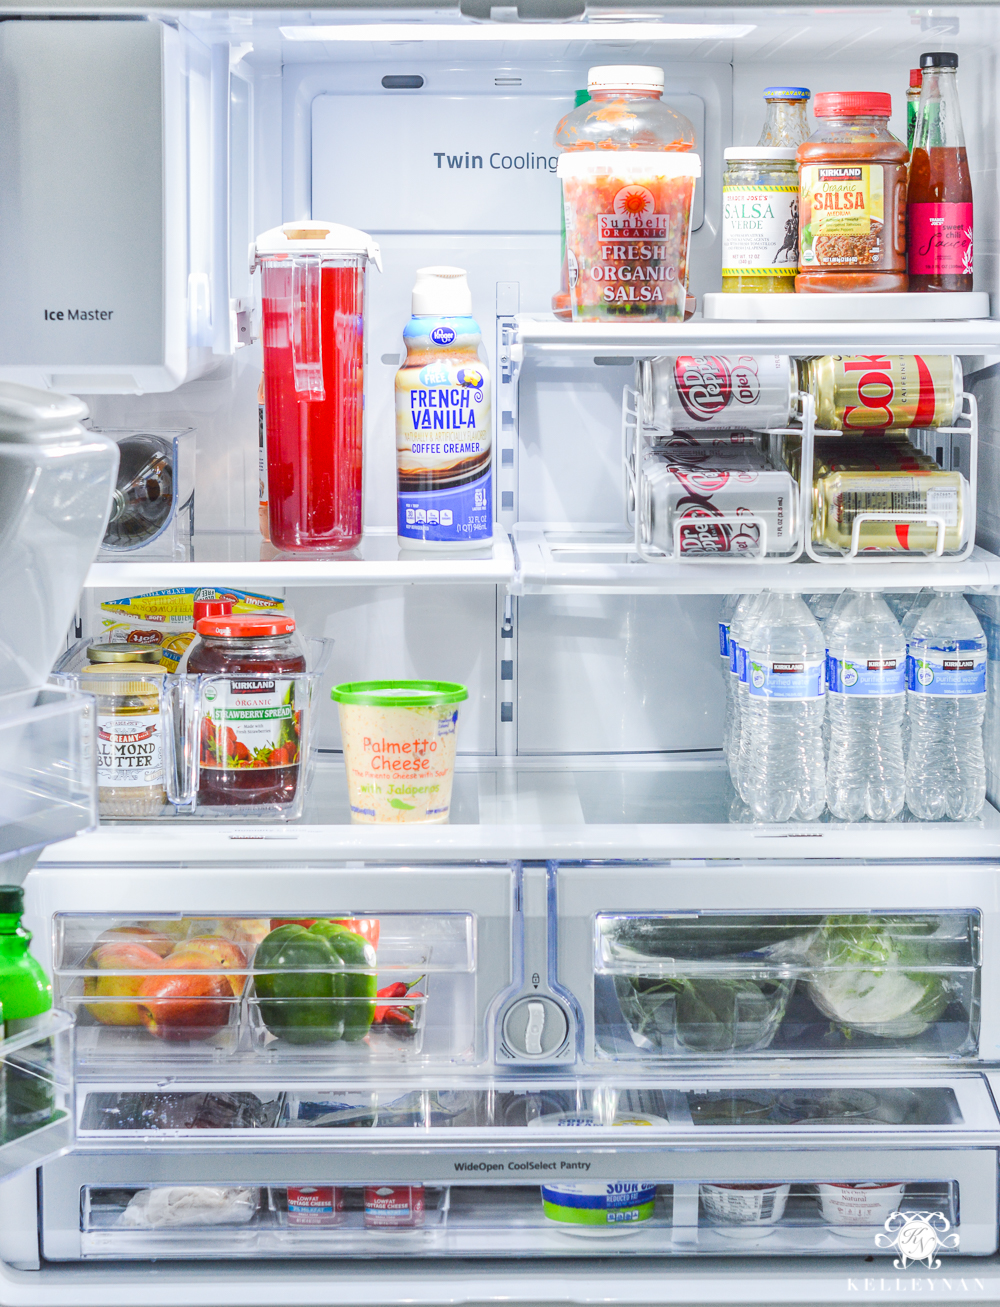 Refrigerator Organization and Best Ways to Organize the Fridge- cleaned out transformation